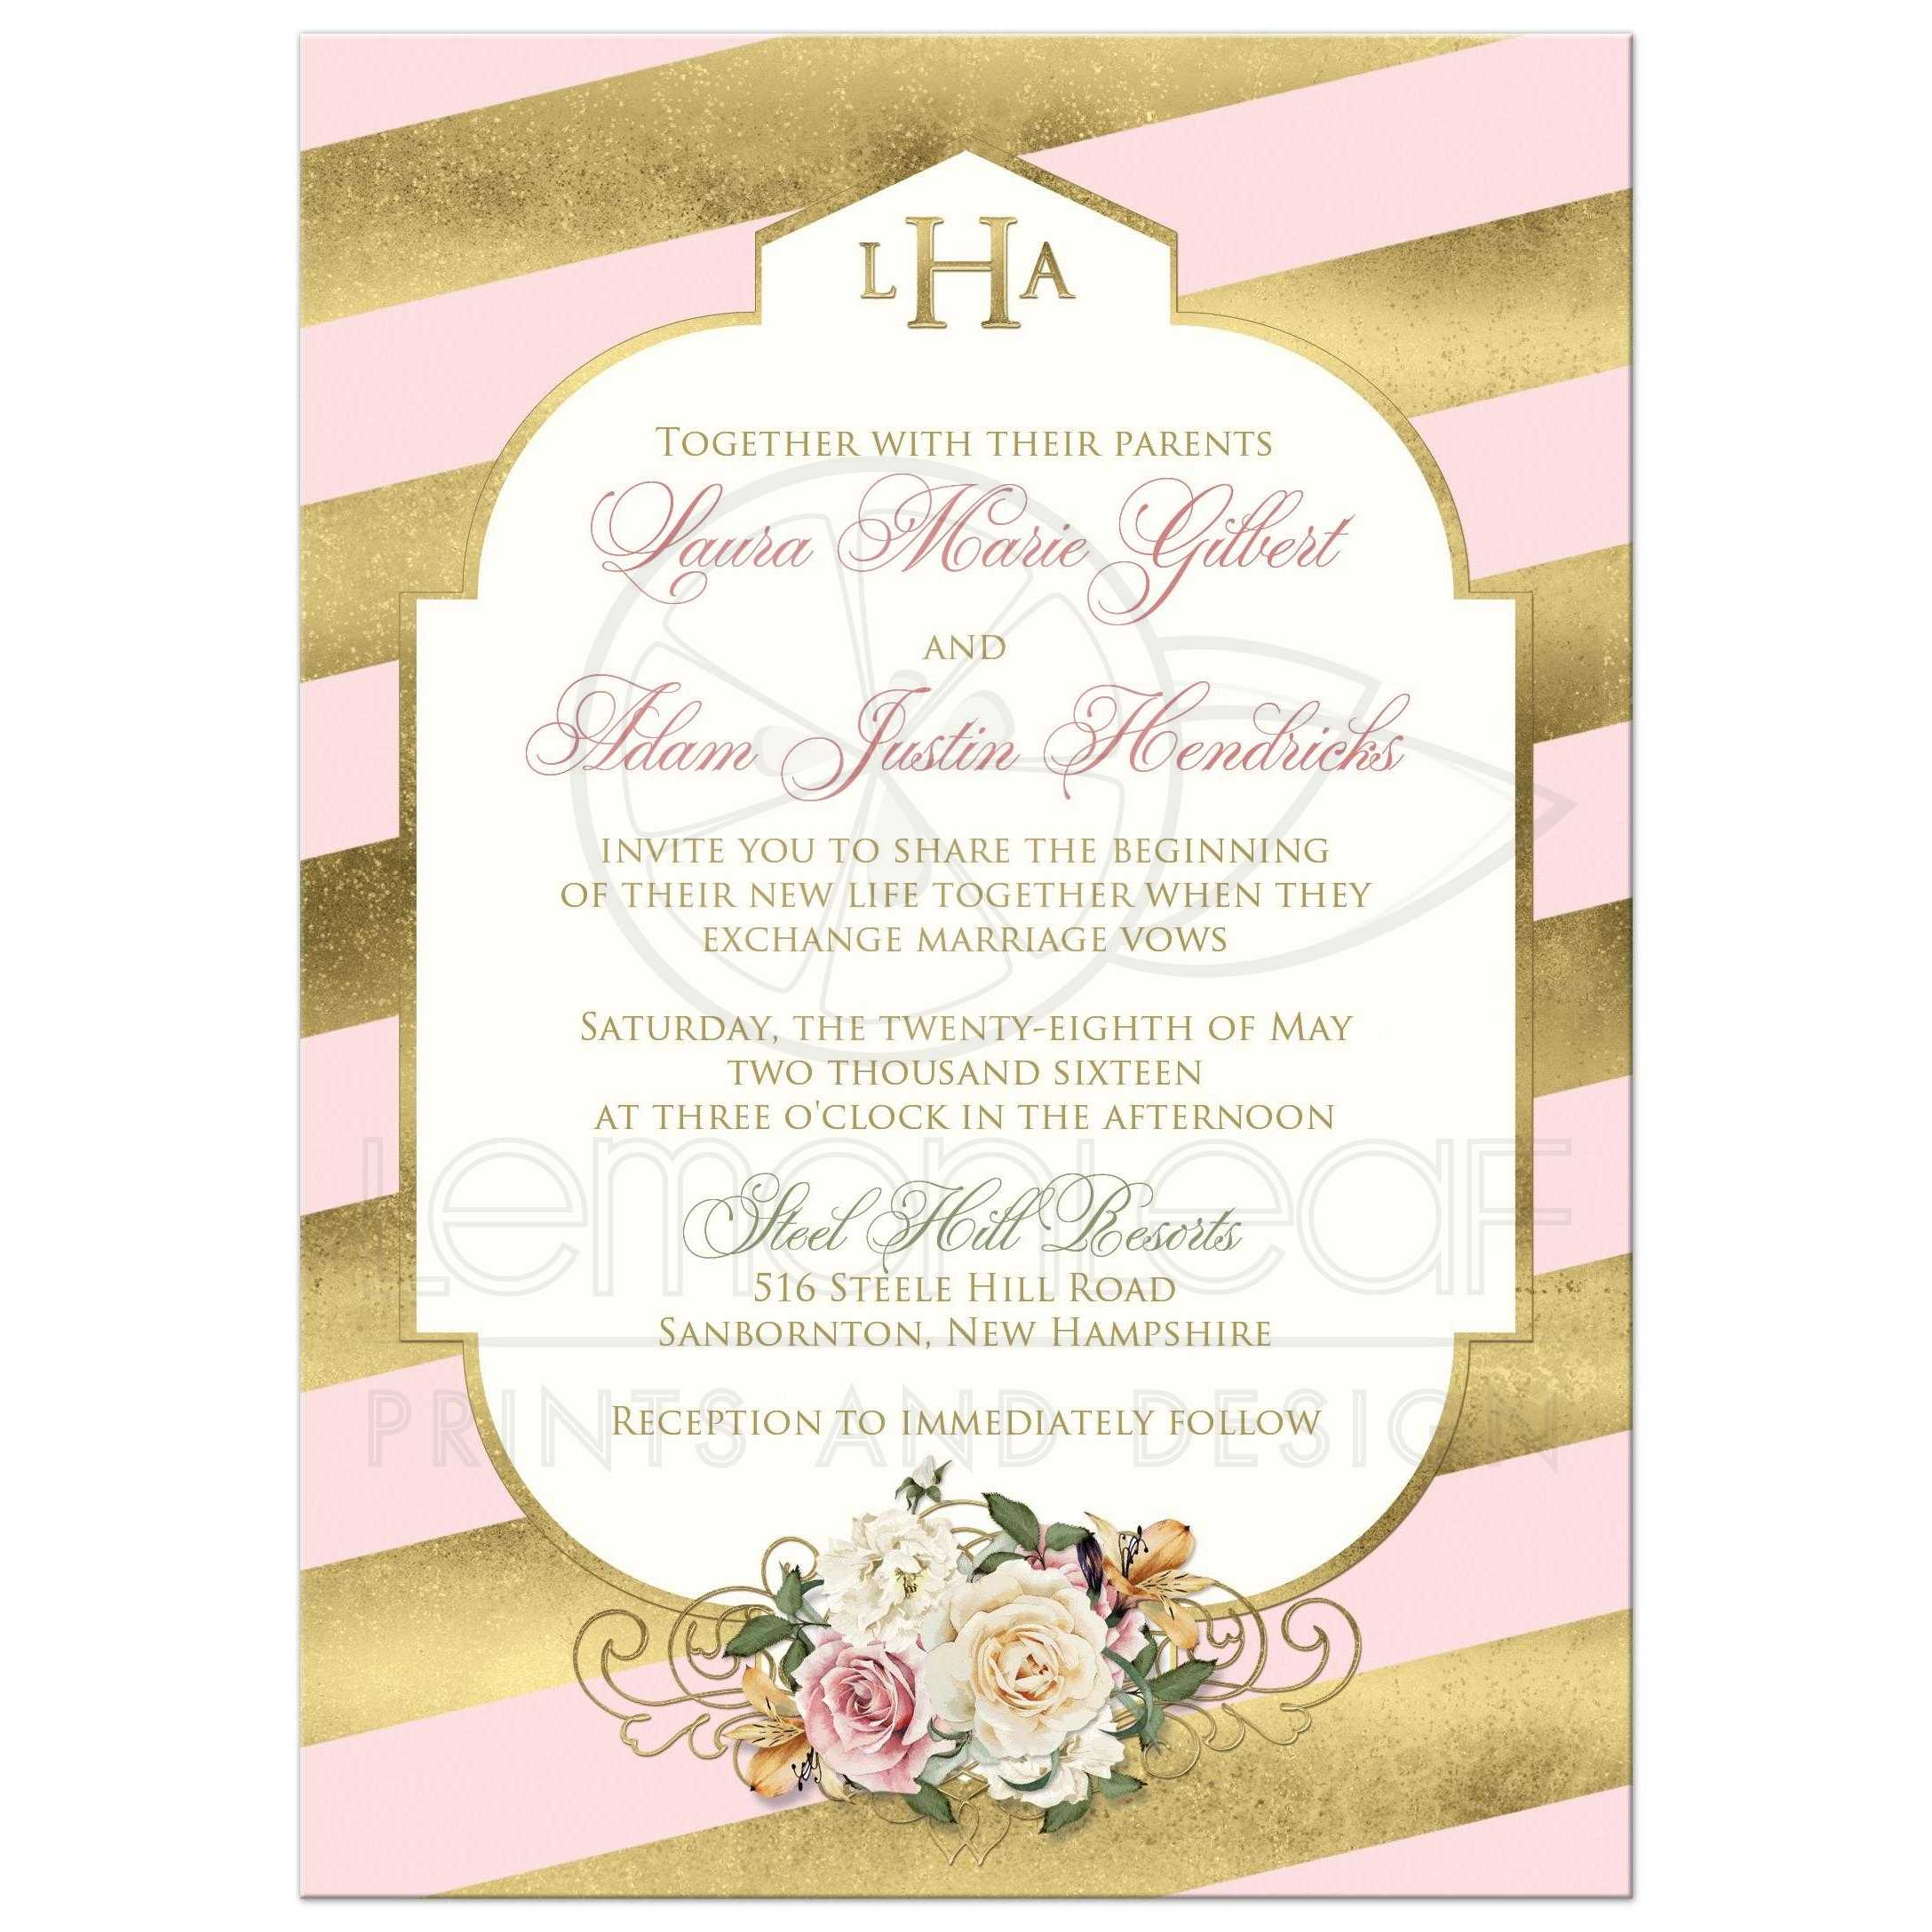 Scroll Invitations Wedding is luxury invitation layout